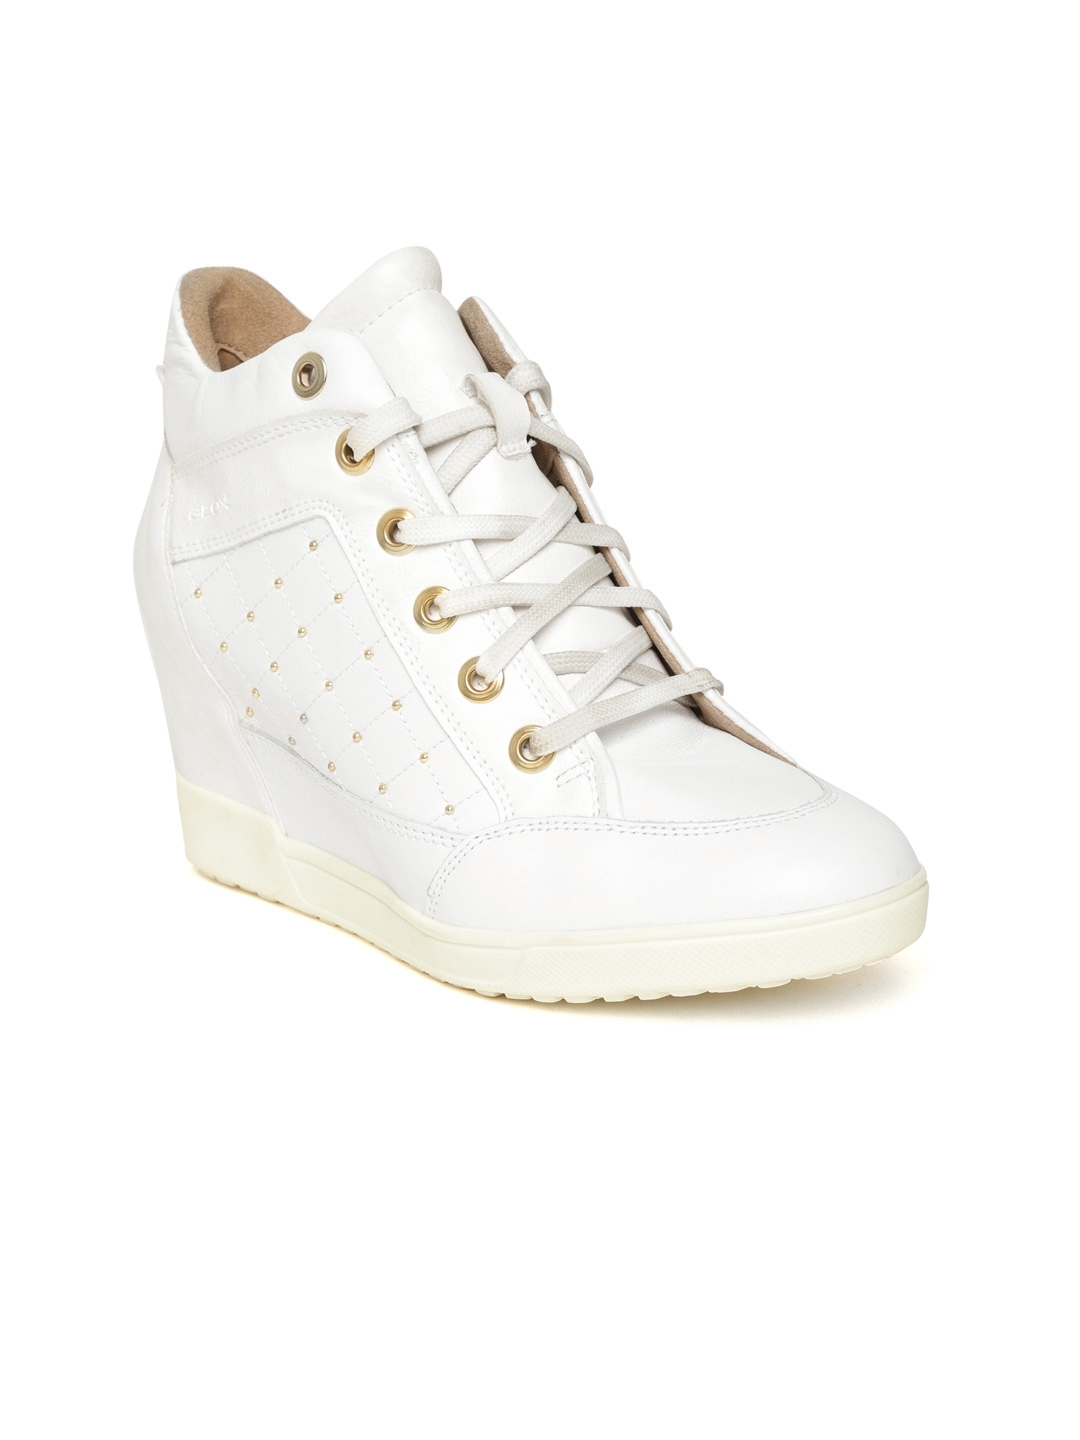 Geox Women White Solid Heeled Sneakers